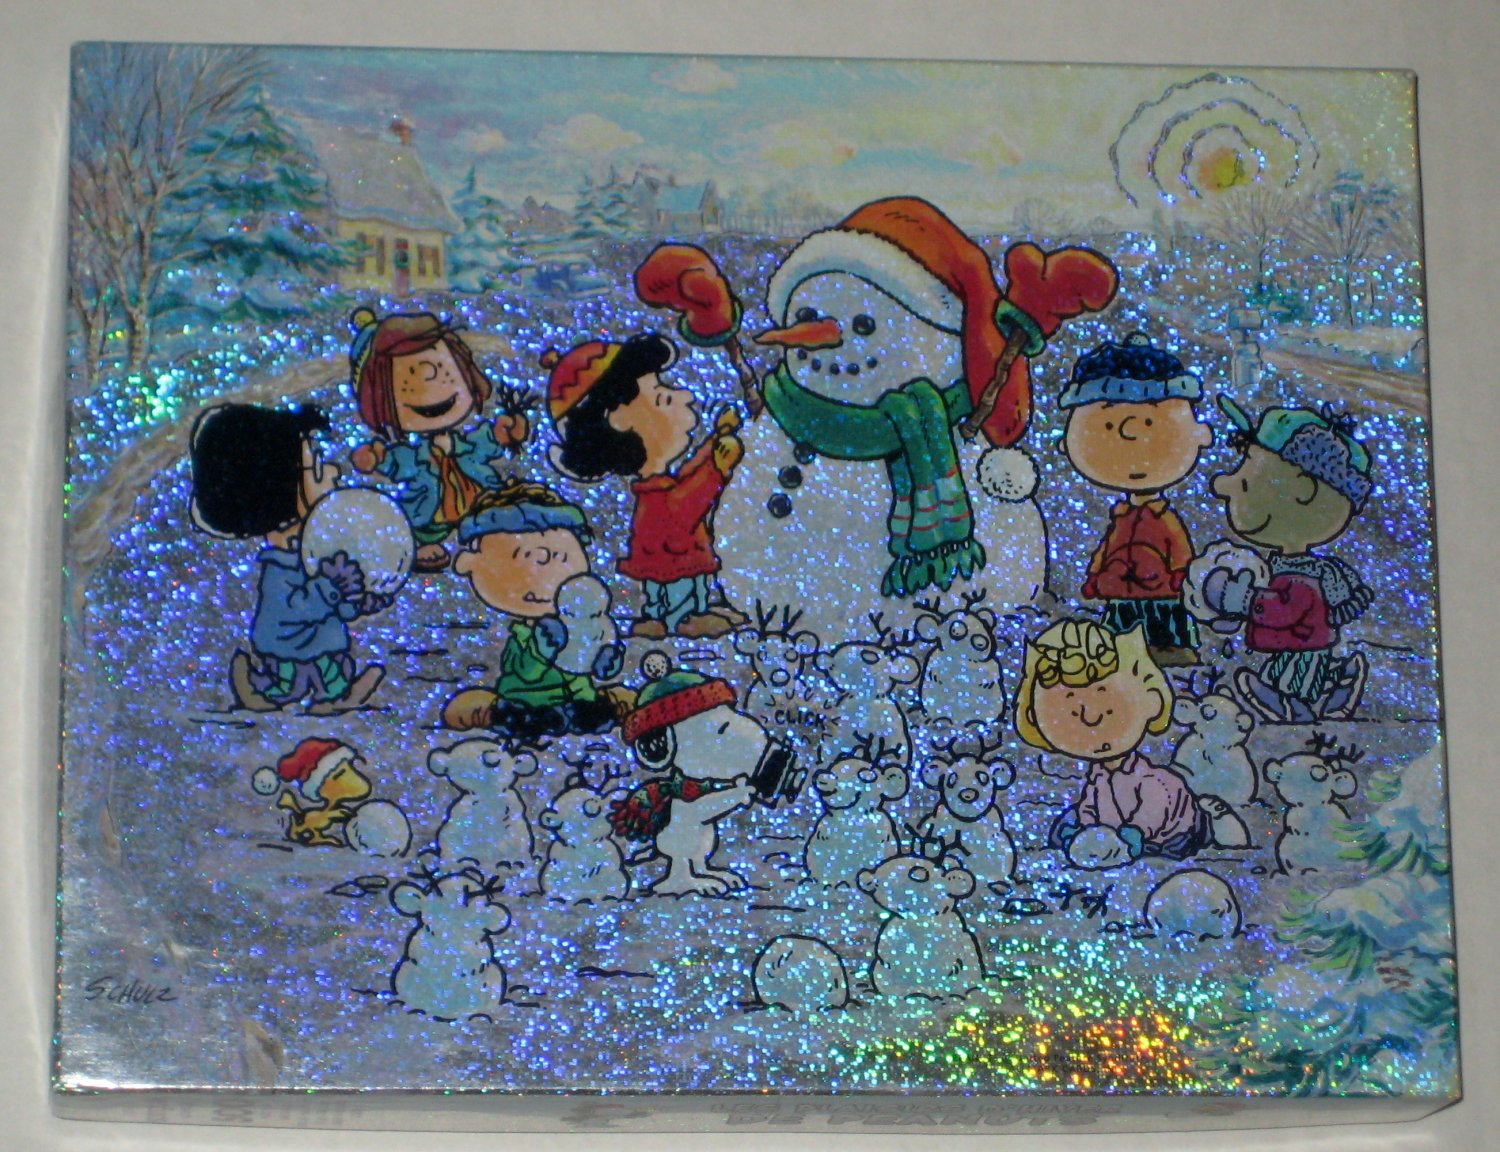 Sold Peanuts Winter Wonderland 500 Piece Springbok Jigsaw Puzzle